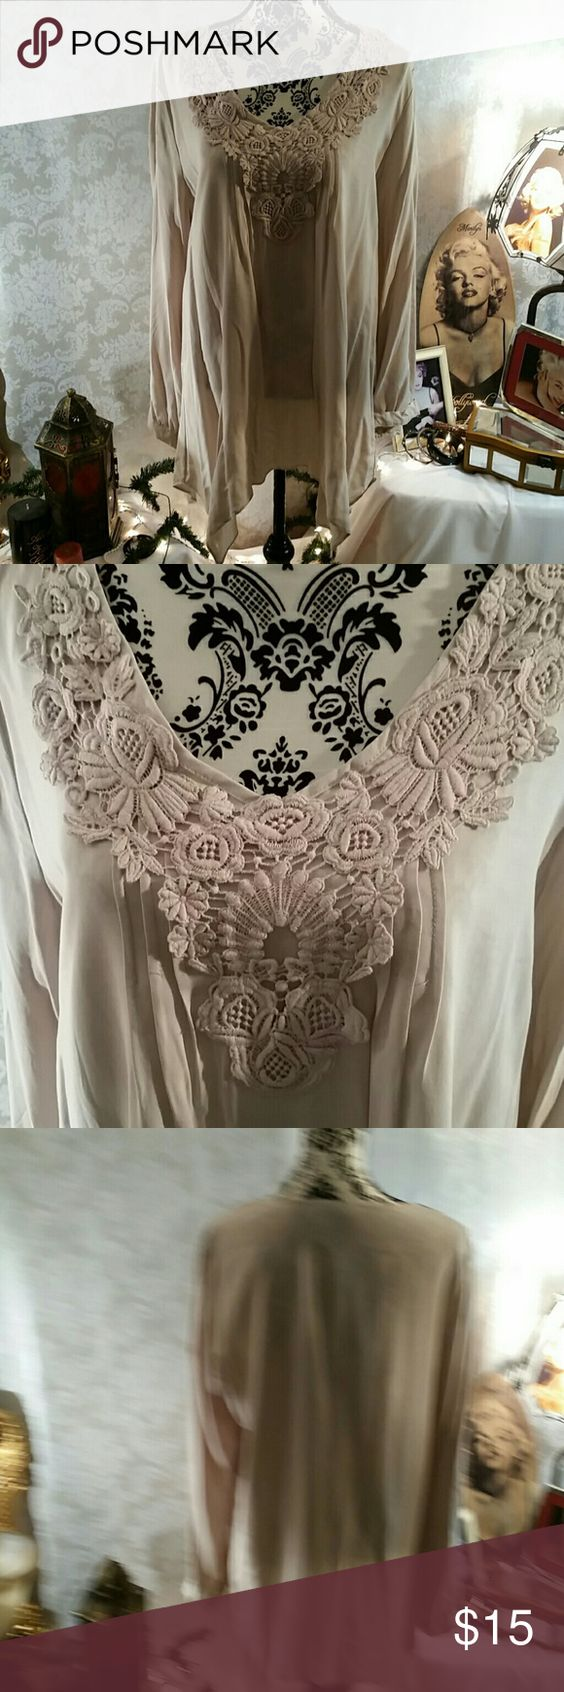 Tunic Spense taupe gorgeous tunic with romantic lace details Spense  Tops Tunics